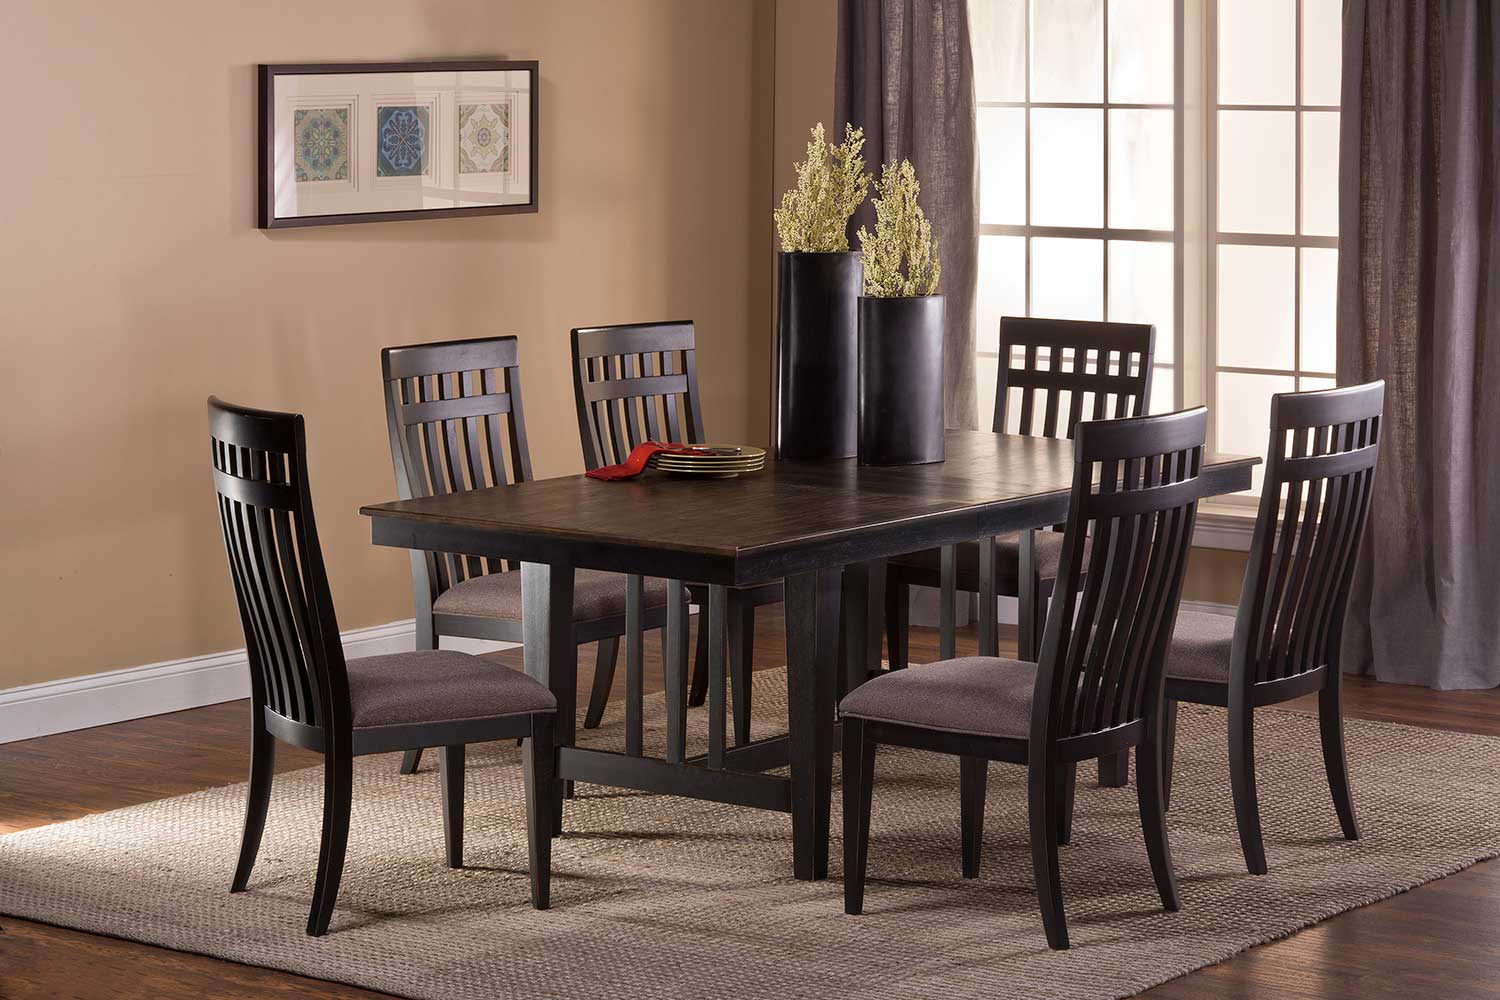 Hillsdale Copeland Dining Set - Distressed Black